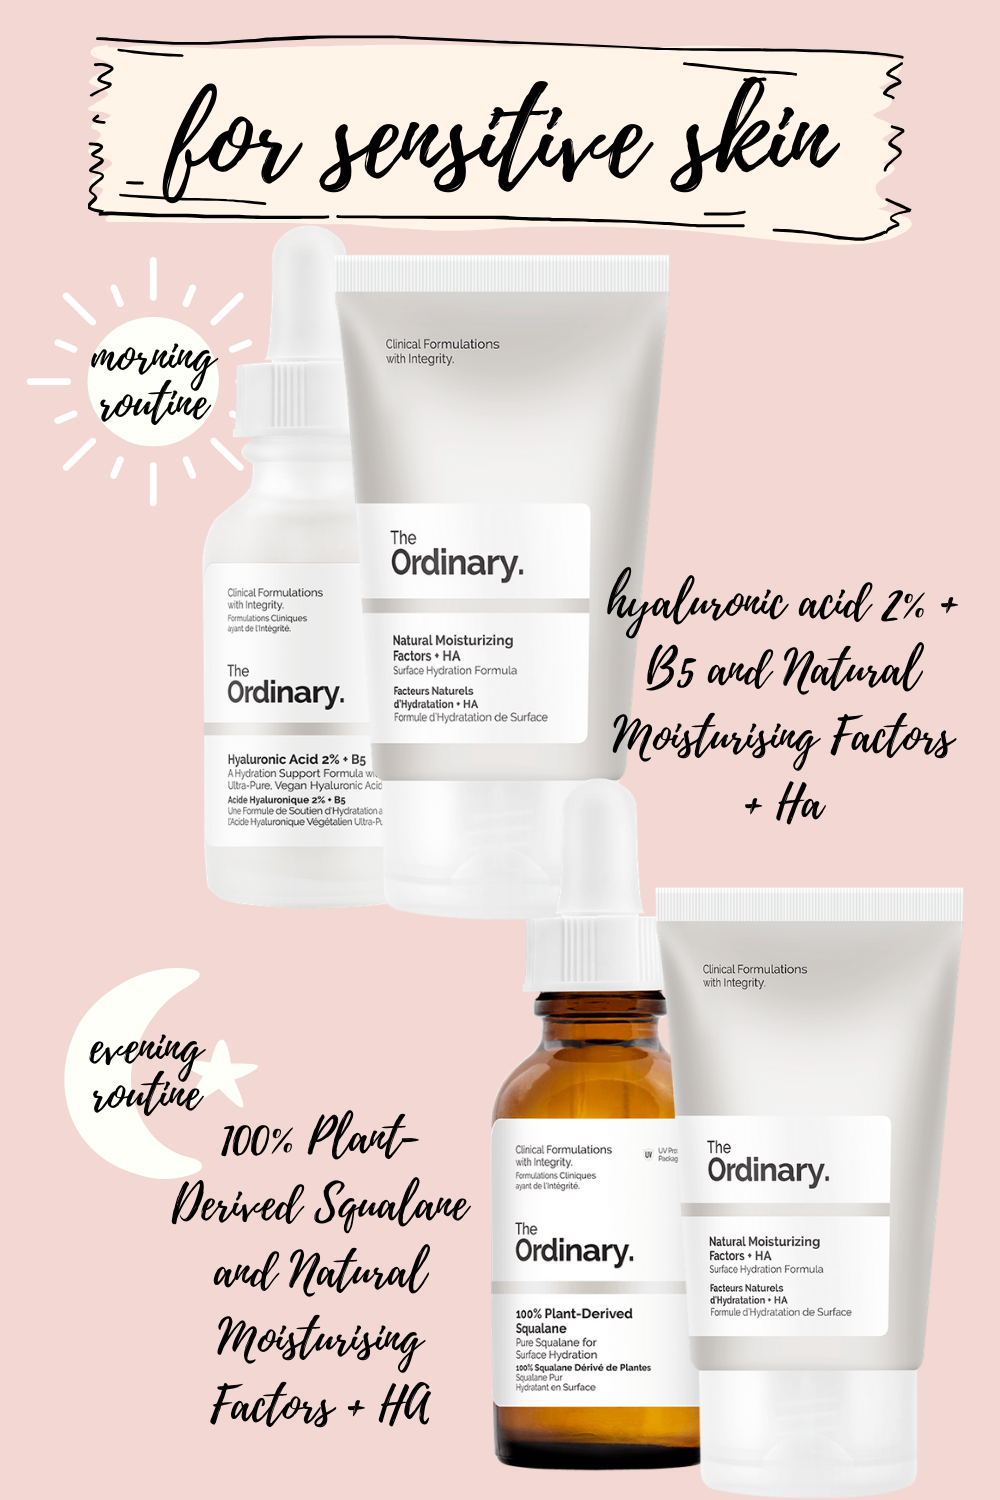 the ordinary skincare routine for sensitive skin